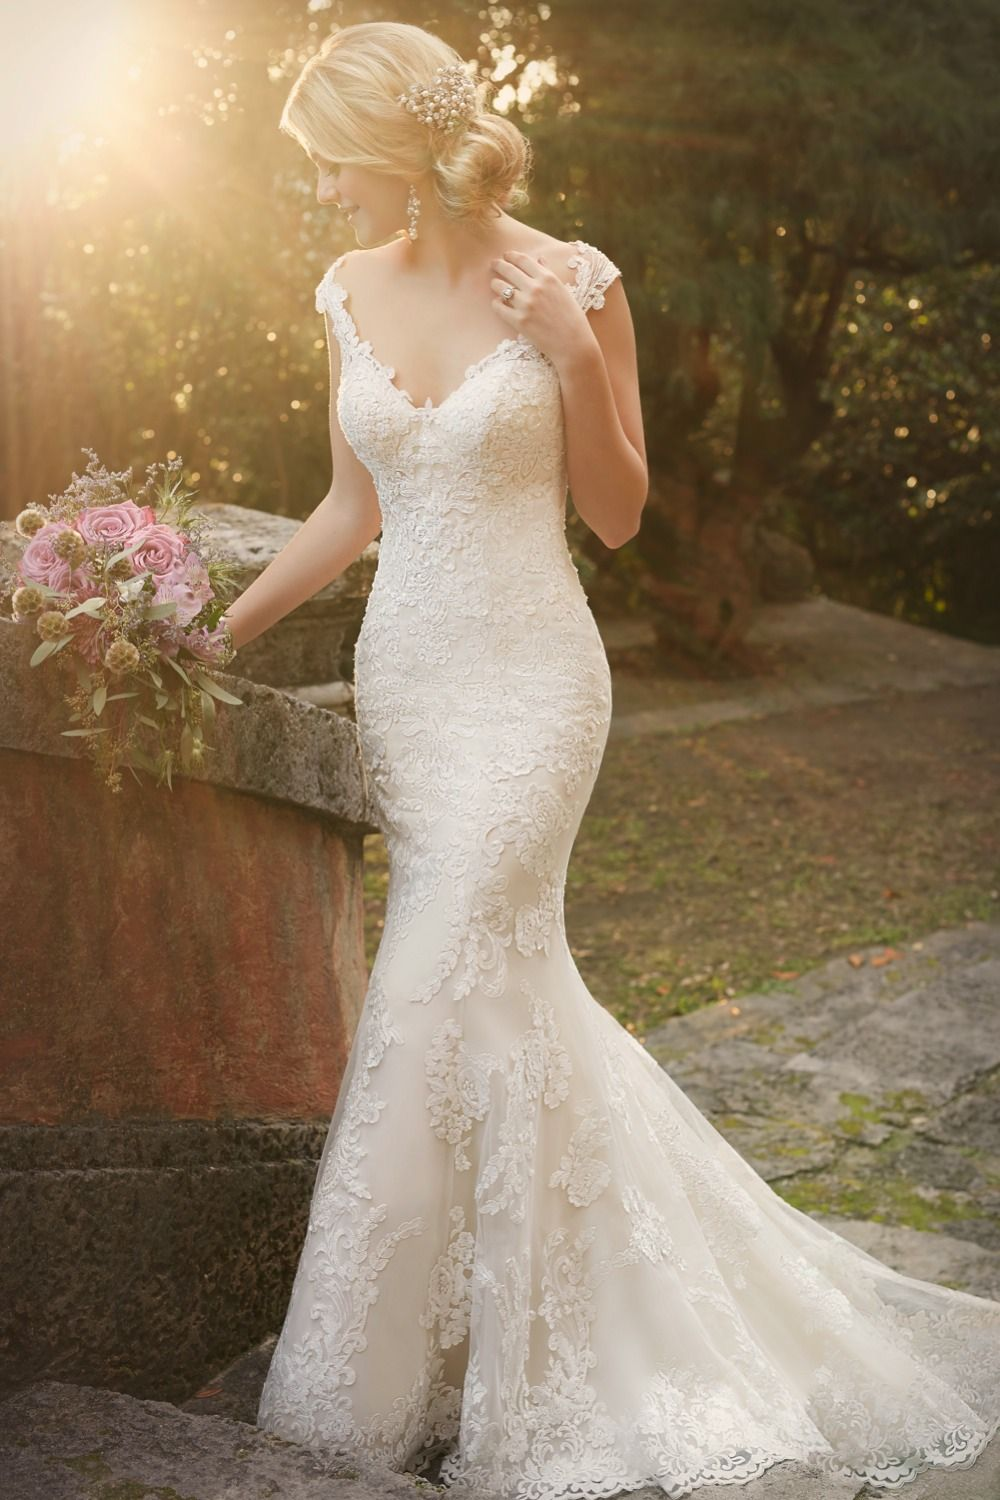 Style D1977 Essense Of Australia 6 Fishtail Wedding Dresses Inspired By Michelle Keegan